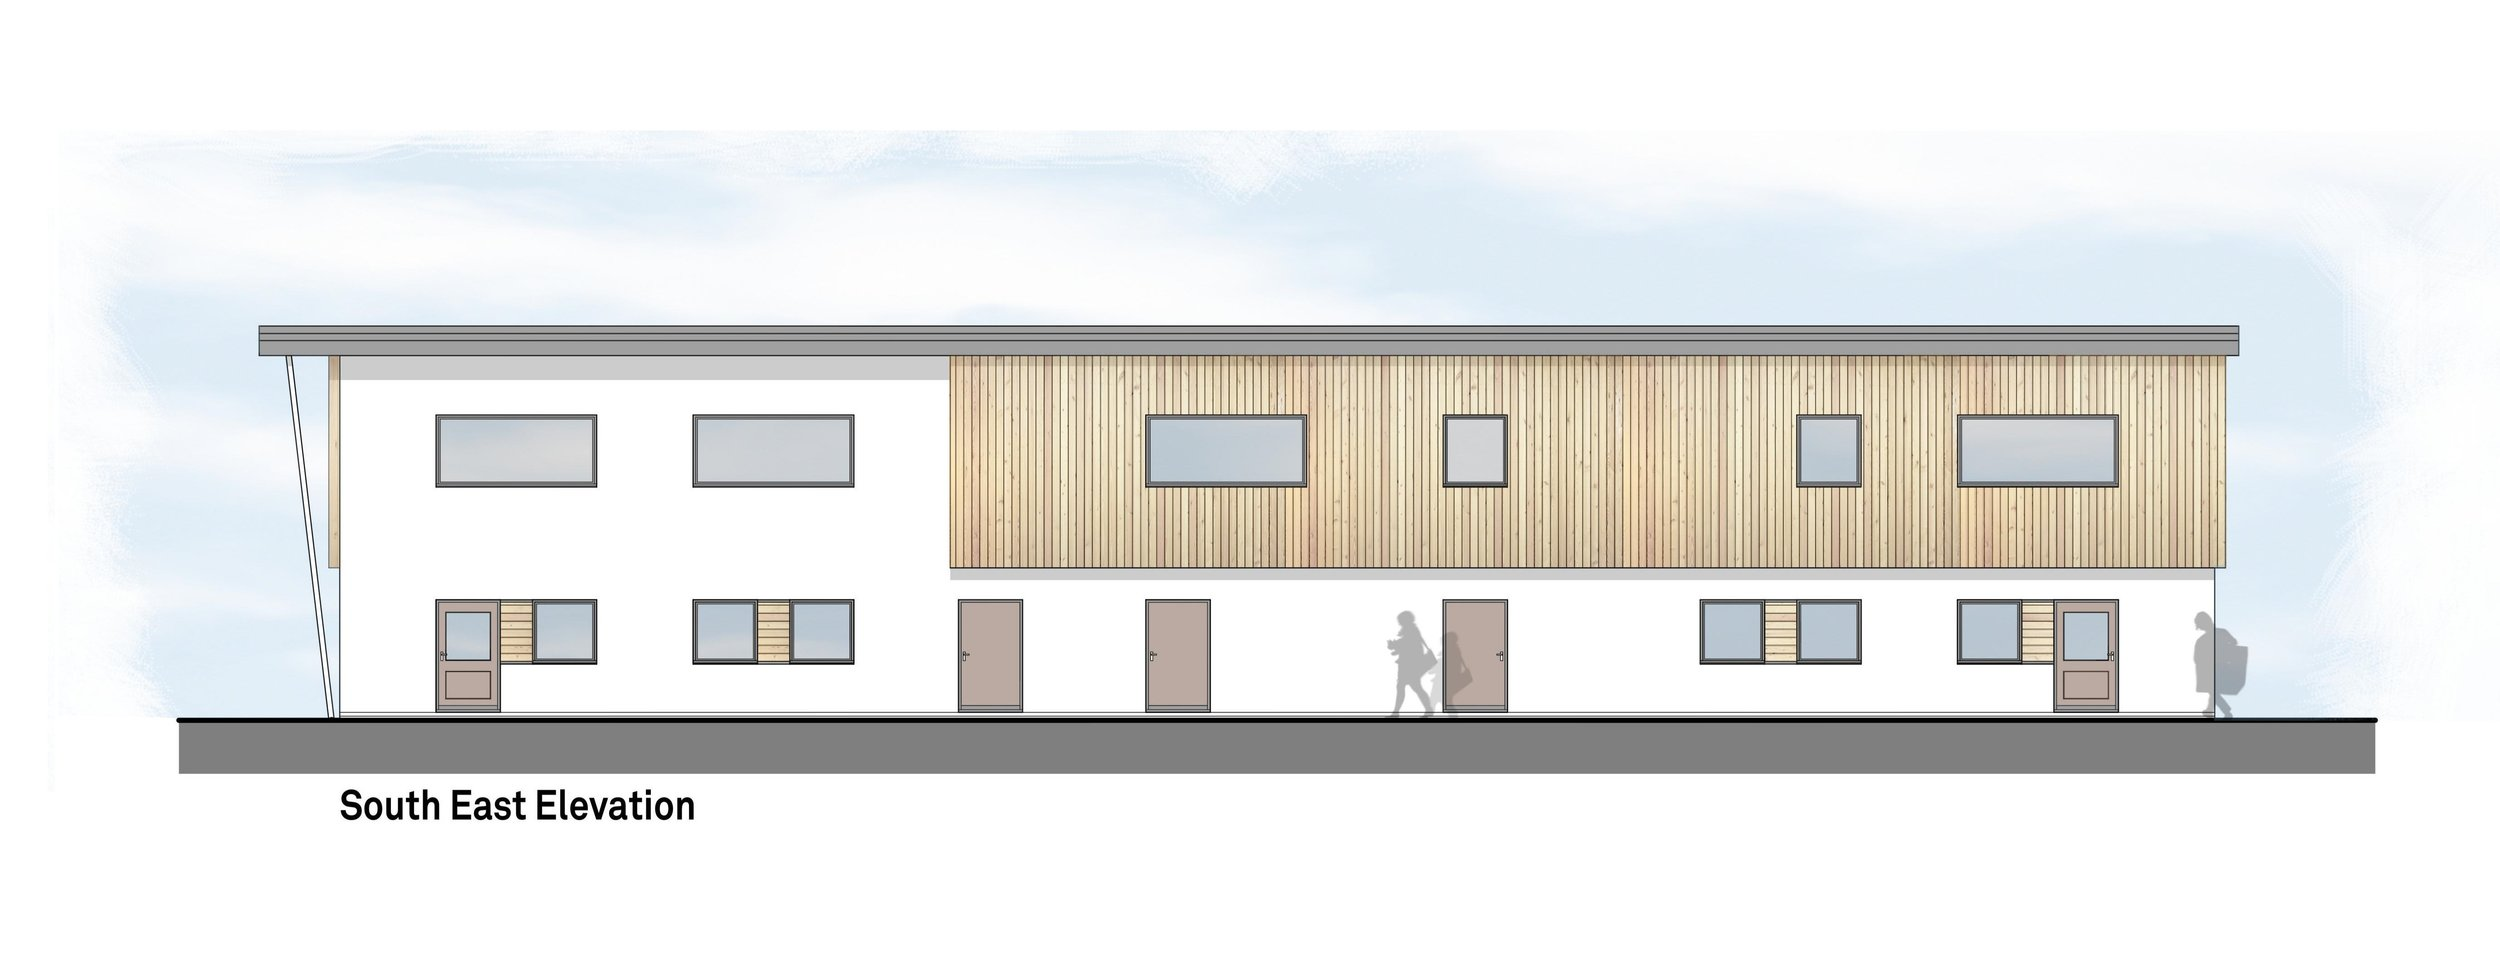 This proposal endeavours to provide some much needed additional teaching space at Finborough School. It will be purpose built and designed to suit the specific needs of the school, whilst also being flexible enough to adapt to its ever changing requirements going forward.